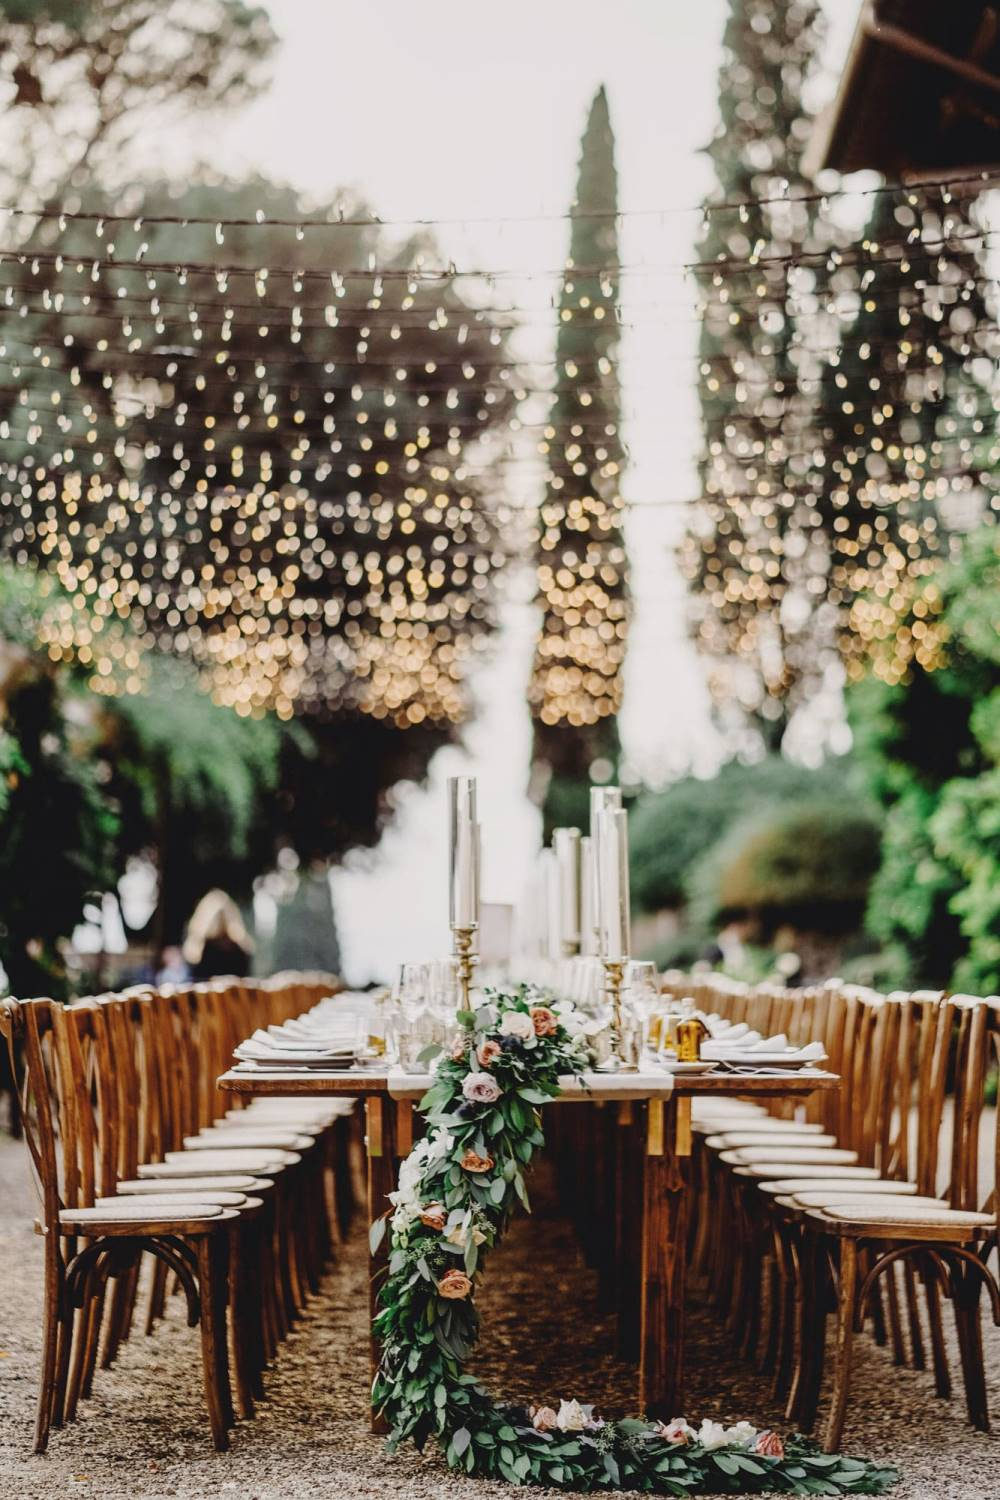 Outdoor reception for your wedding in Tuscany, Italy